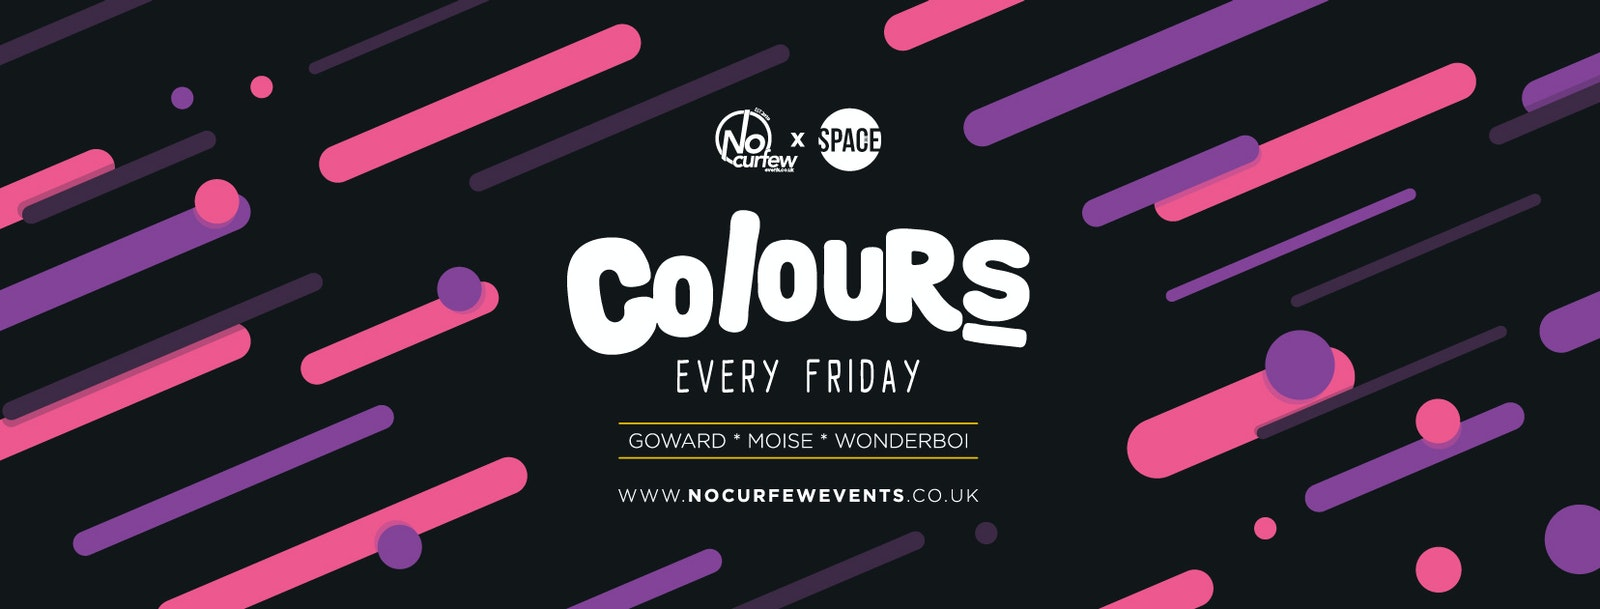 Colours Leeds at Space :: Every Friday :: 90p Drinks